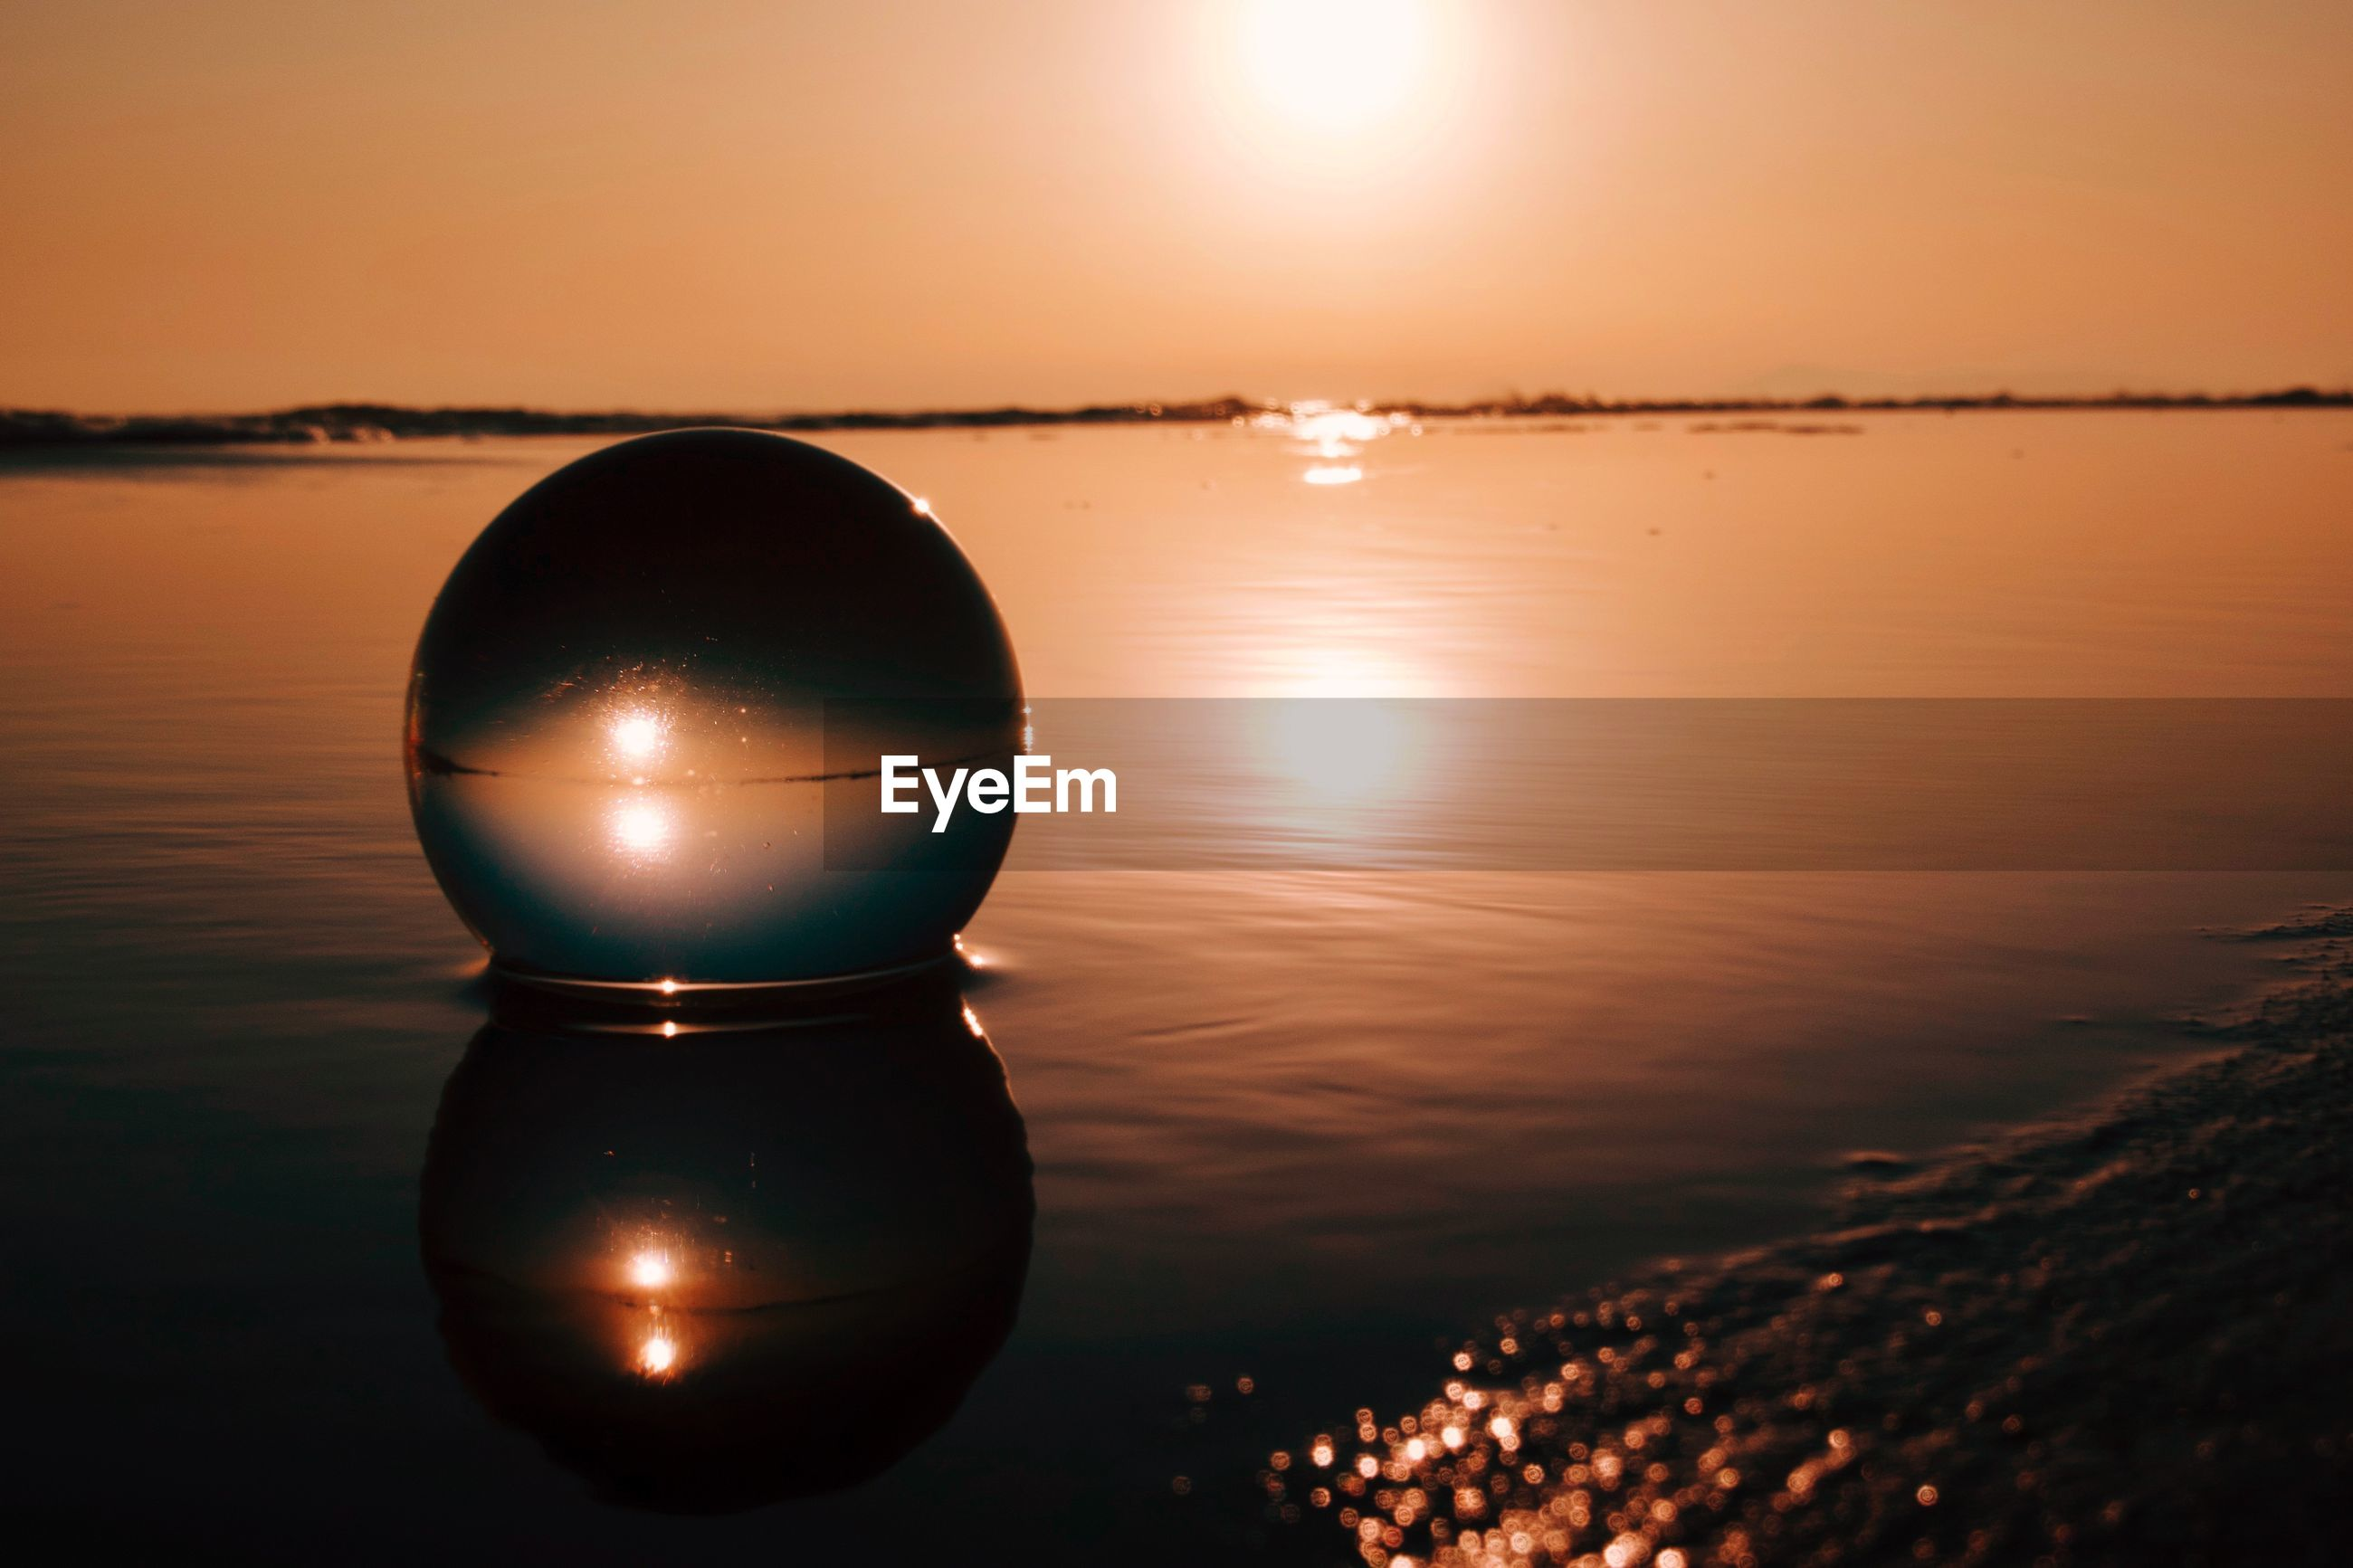 Scenic view of crystal ball in the sea against sky during sunset